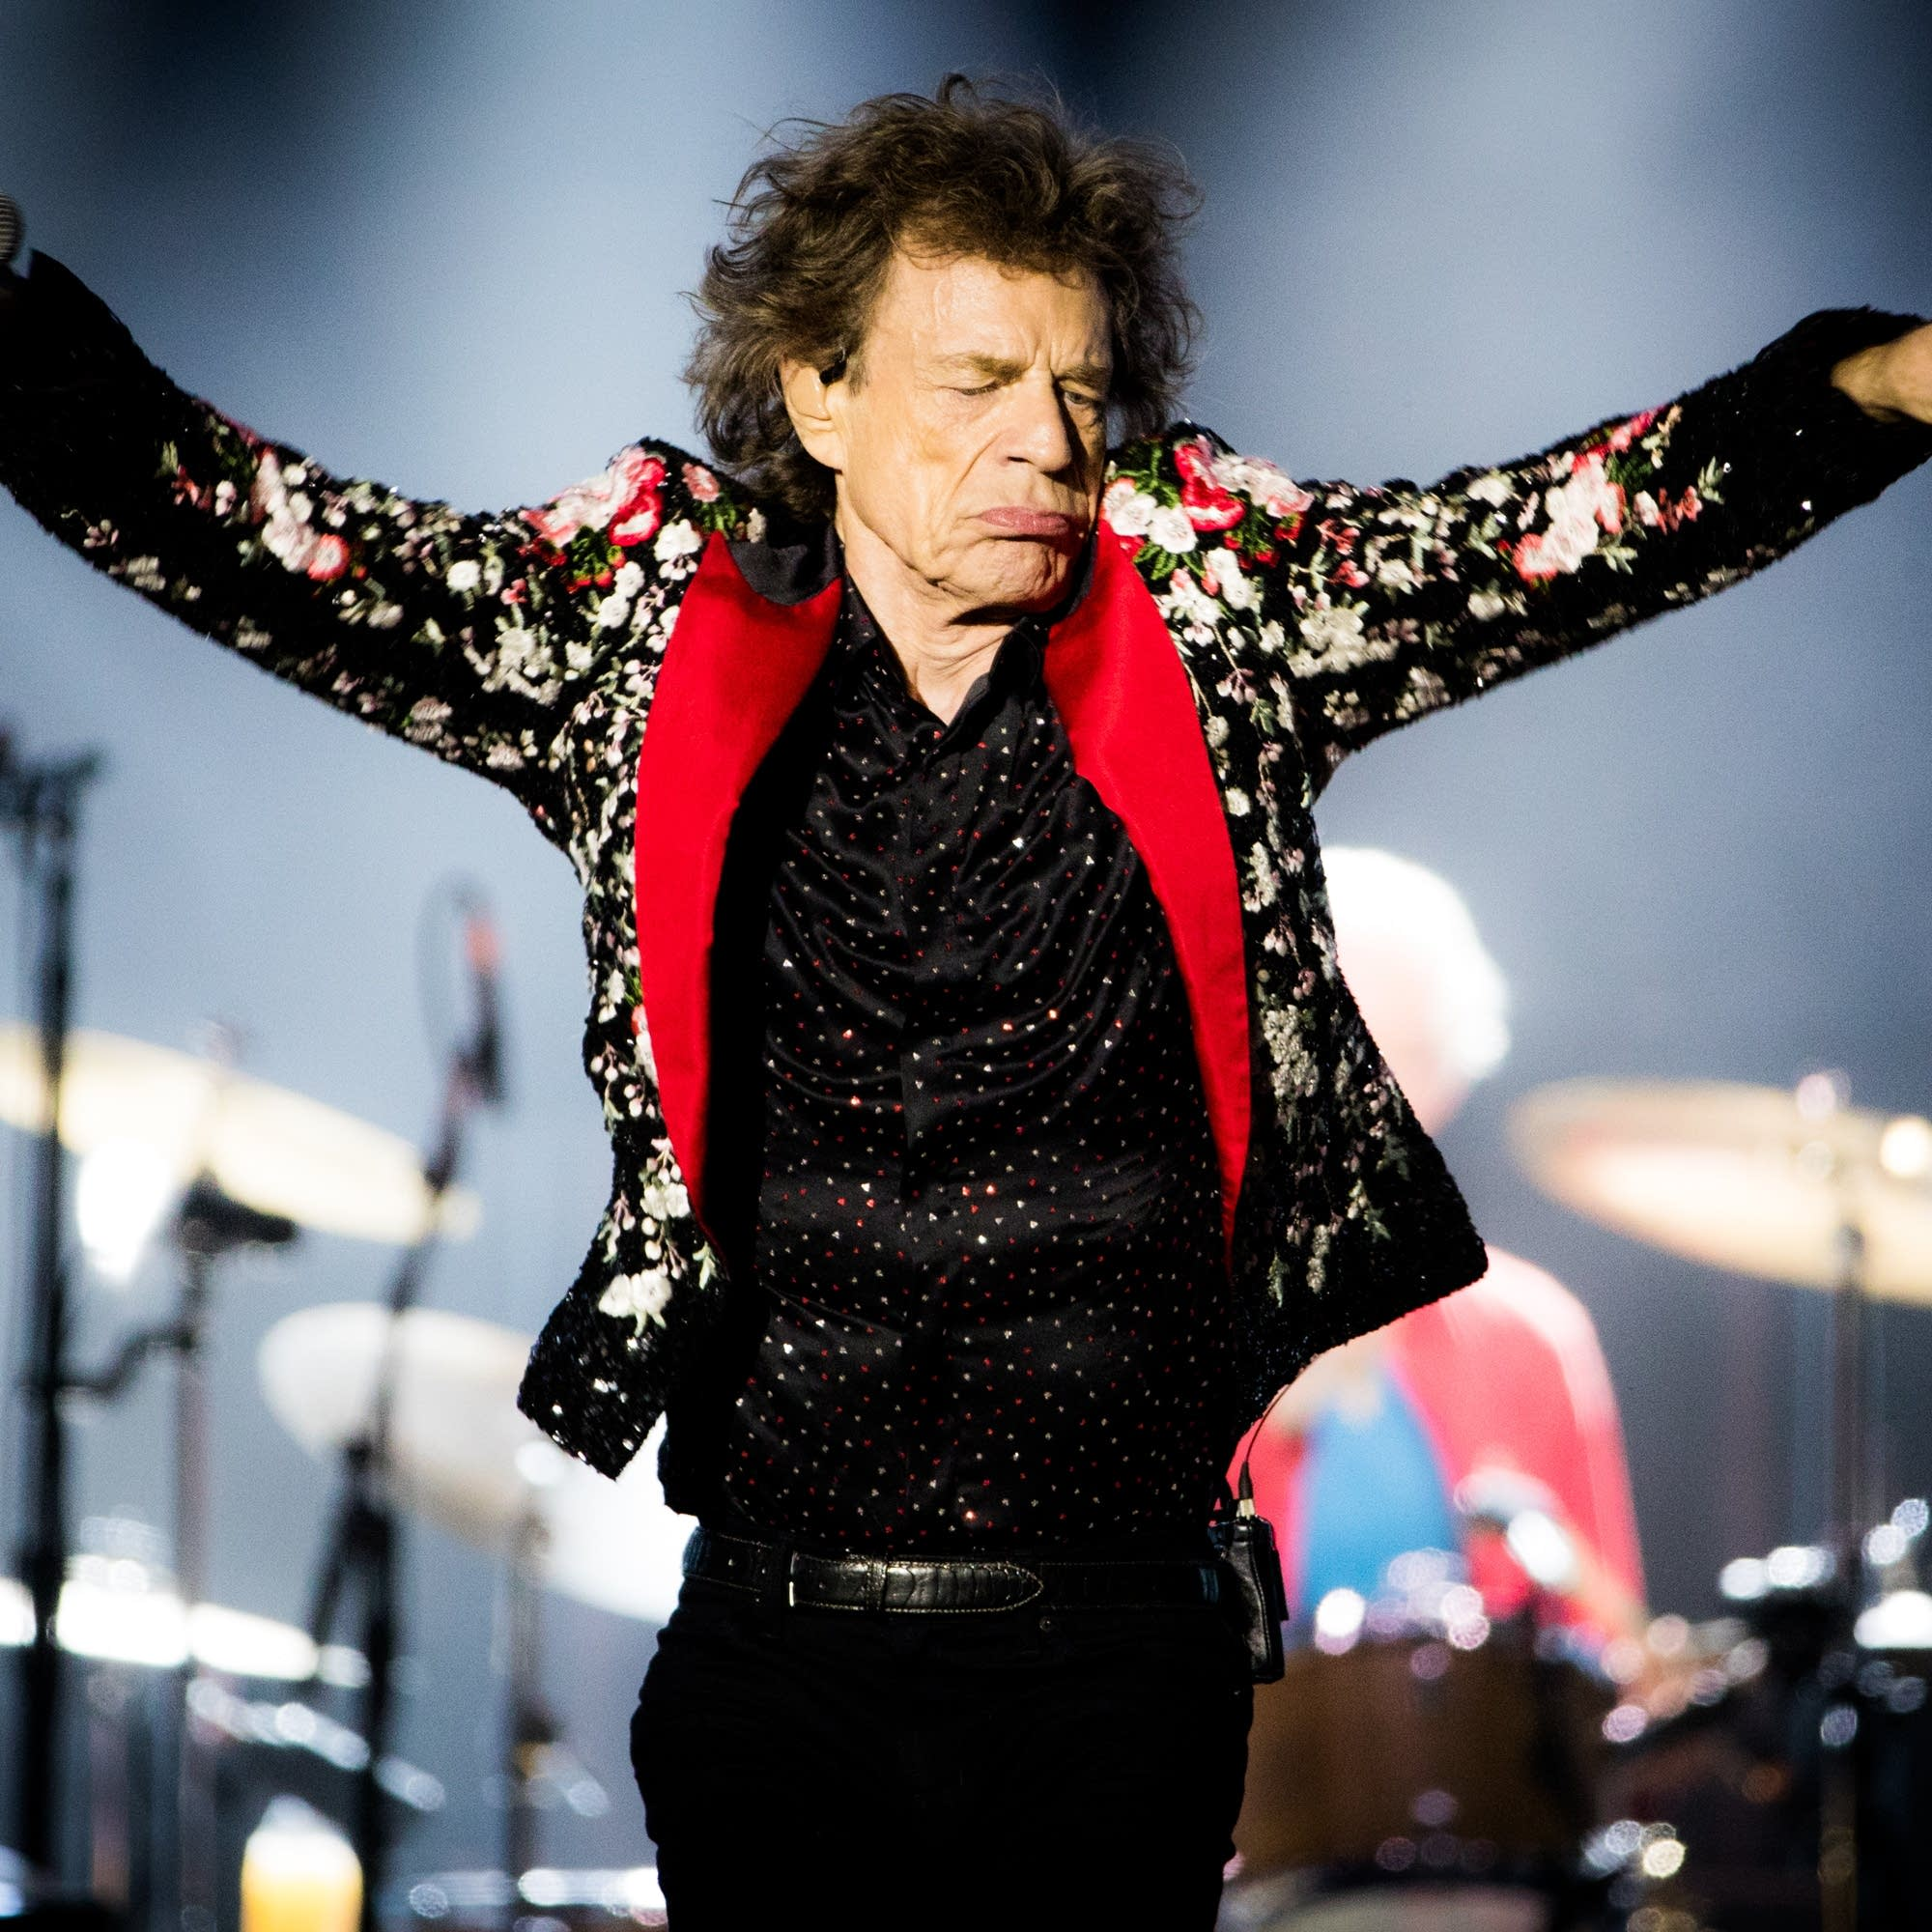 Mick Jagger performs with the Rolling Stones in Miami, 2019.